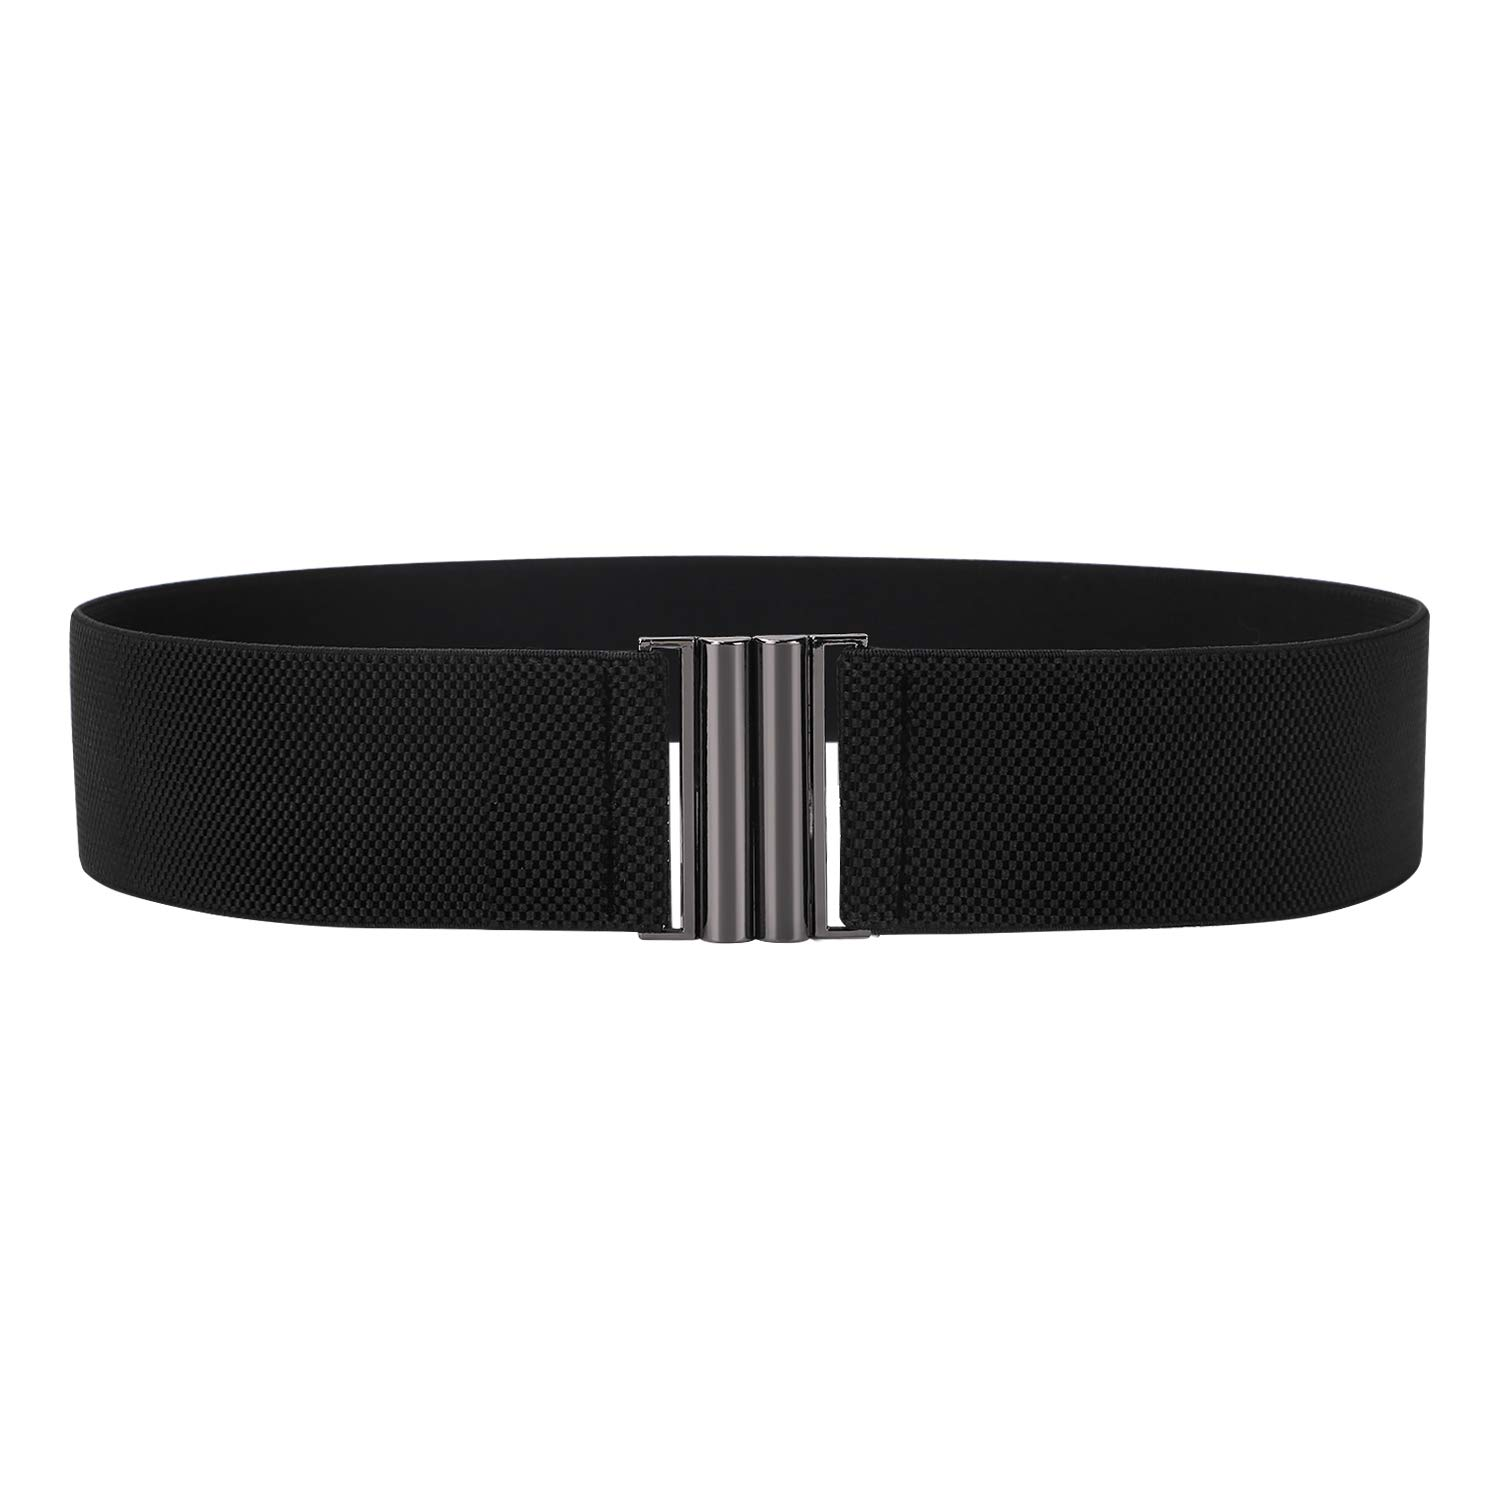 Another fantastic slimming belt!